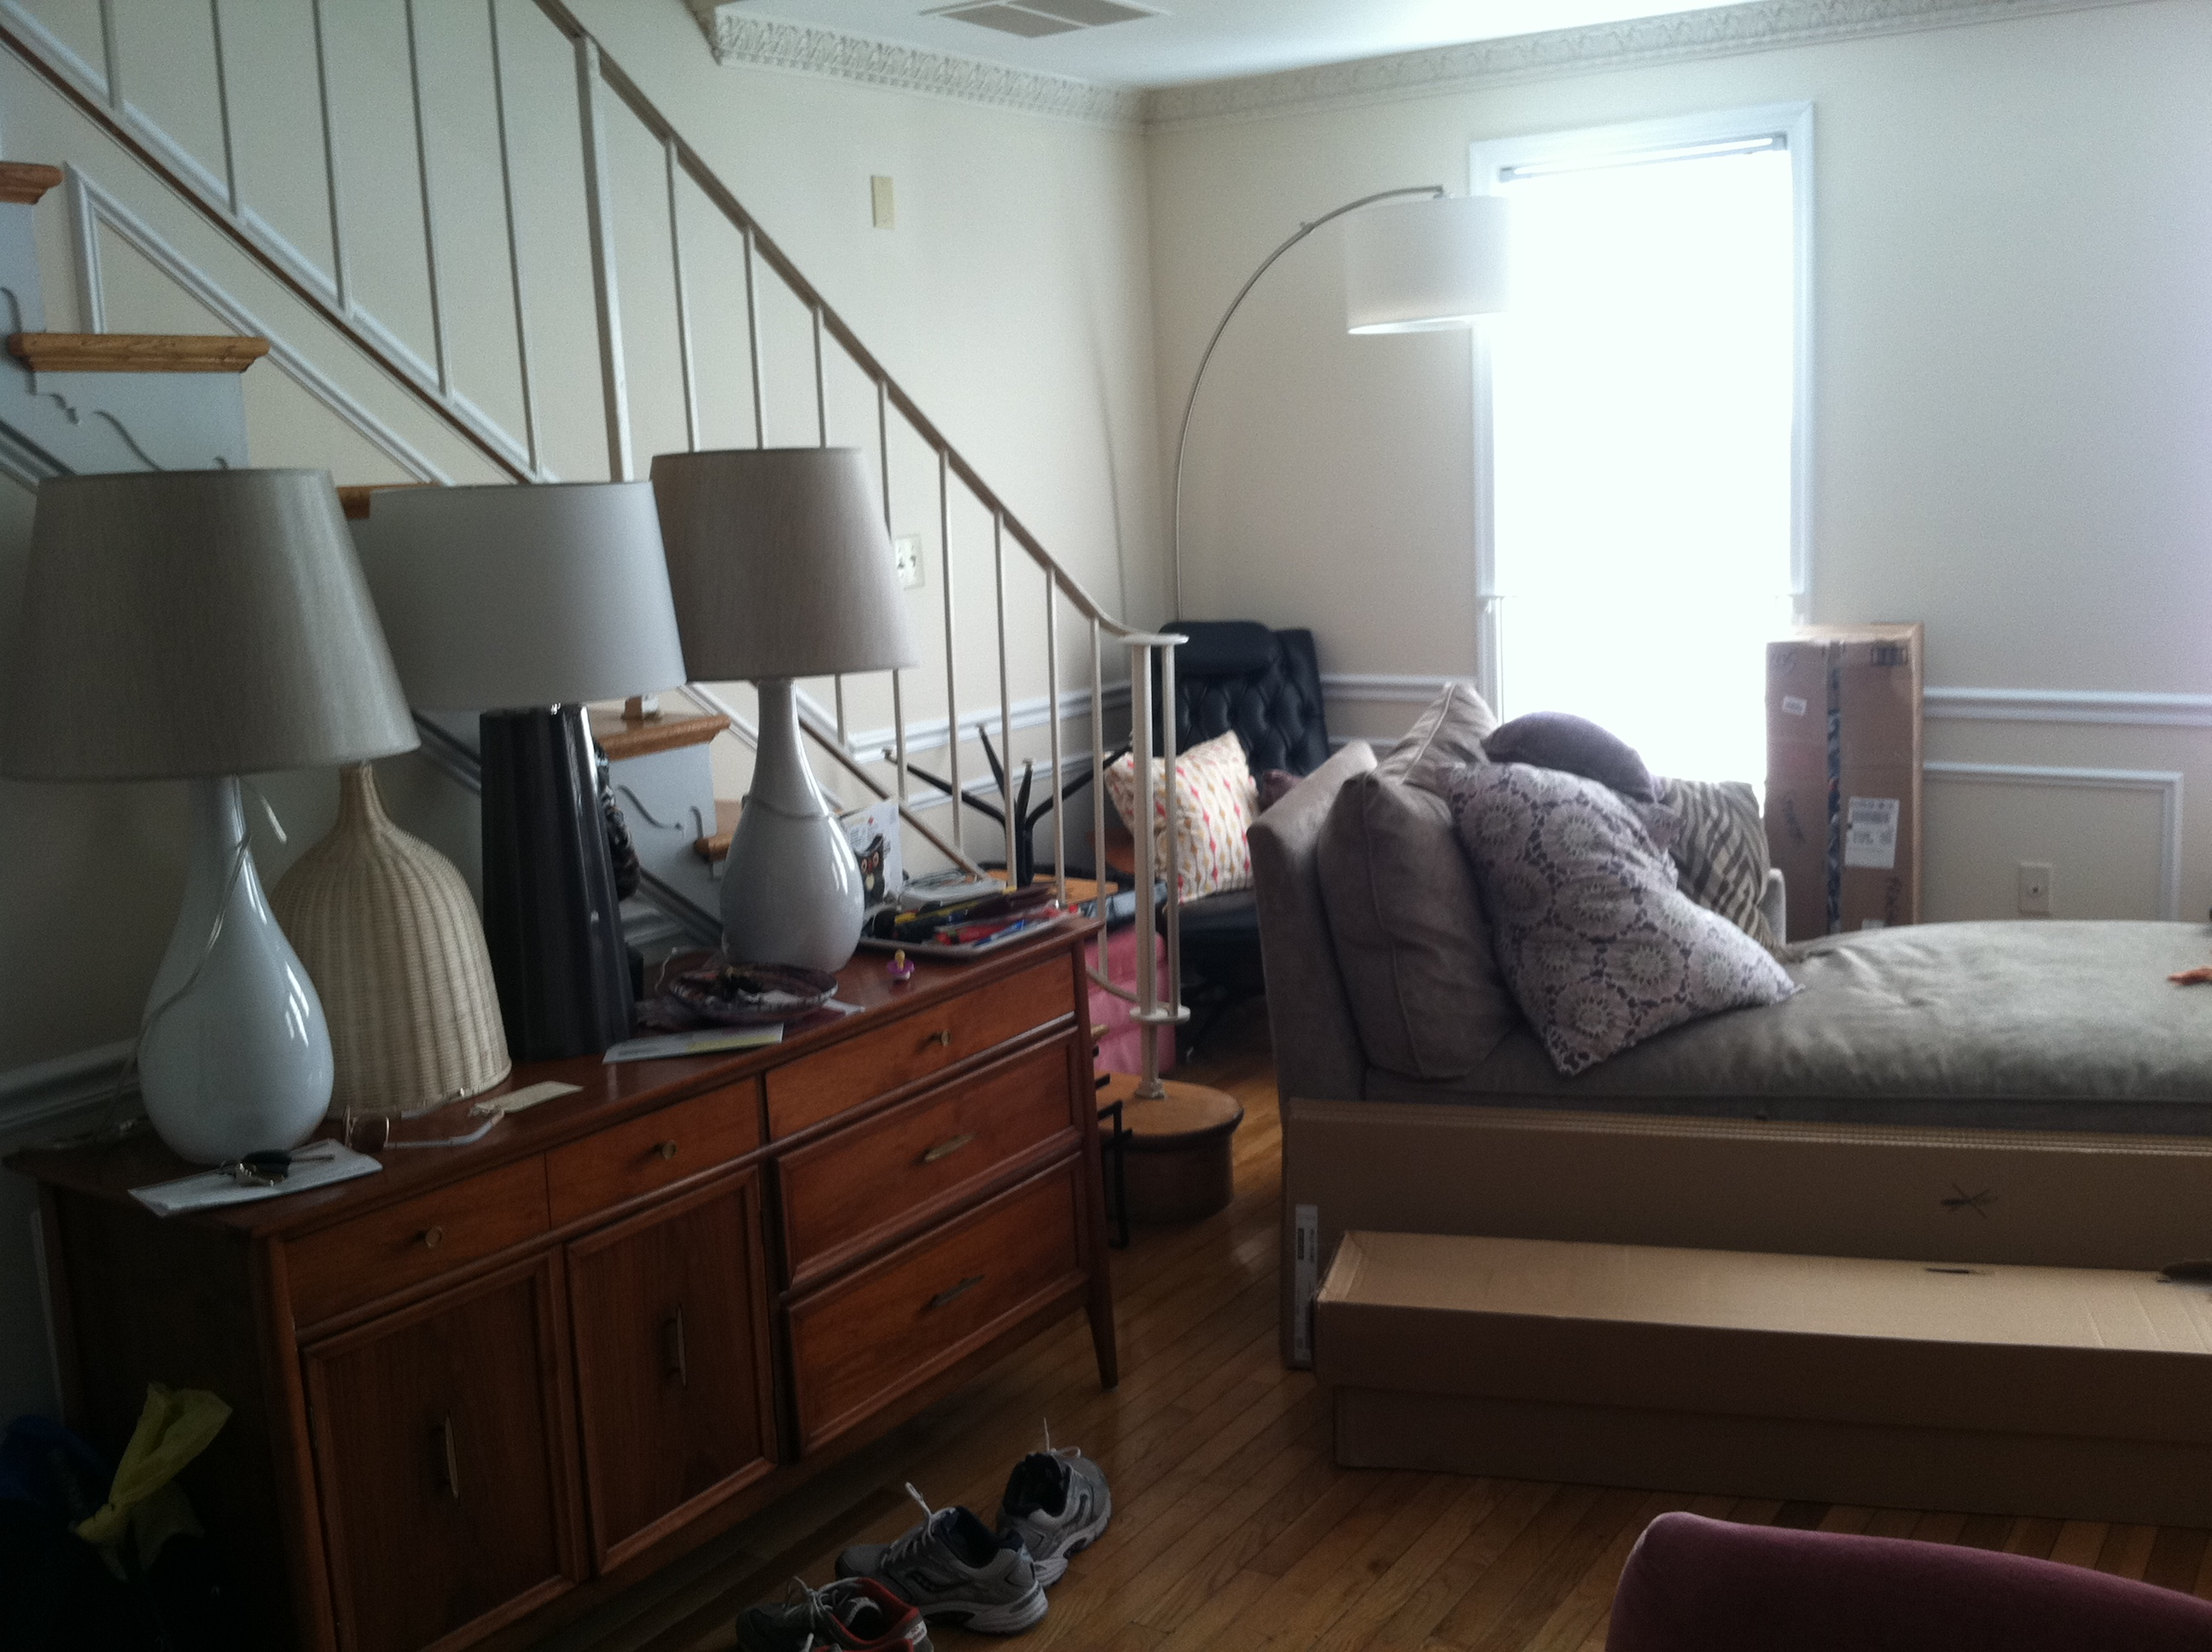 messy apartment room. apartment envy interior design decorating moving messy furniture too big  living room fireplace marble hardwood floors Messy Staircase Apartment Envy